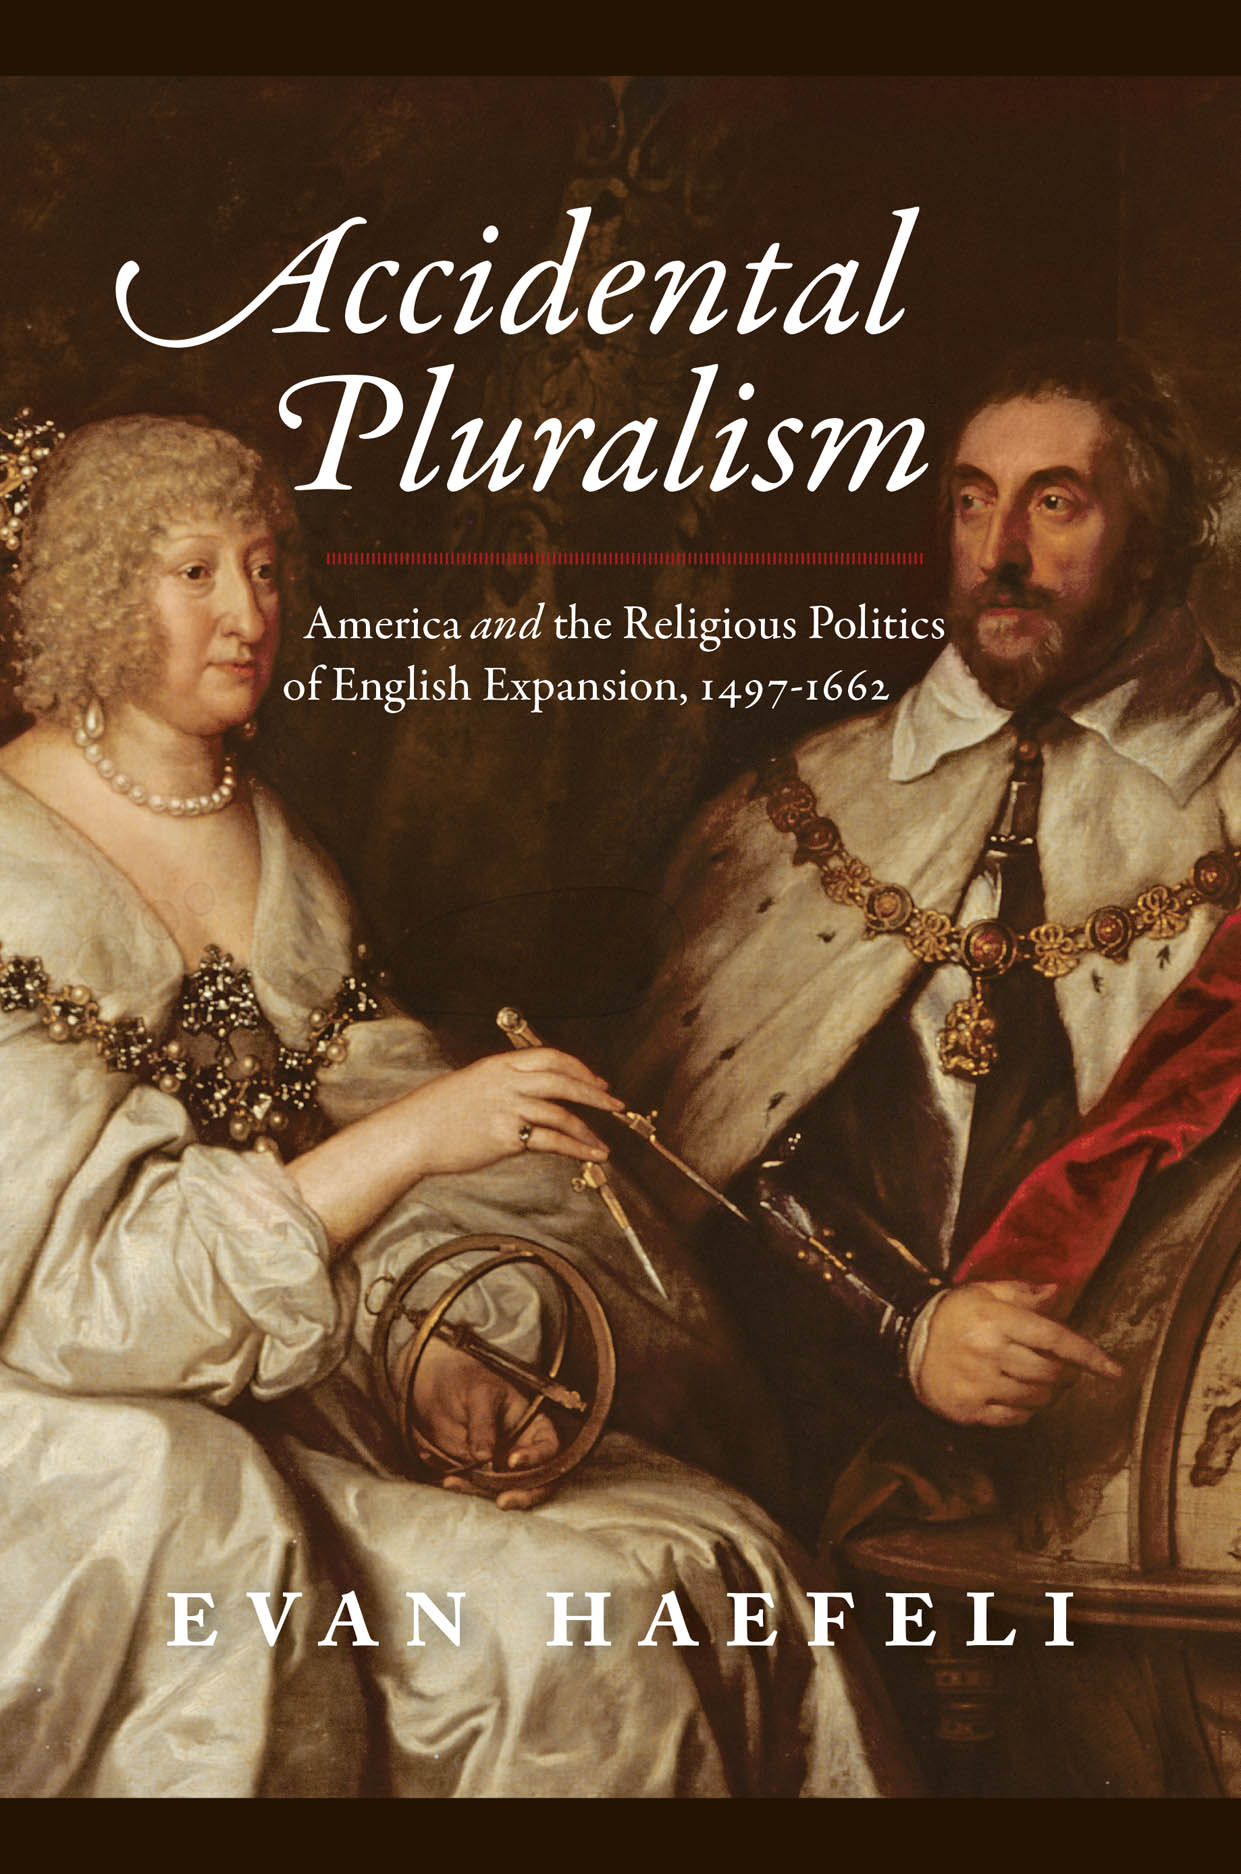 Accidental Pluralism: America and the Religious Politics of English Expansion, 1497-1662